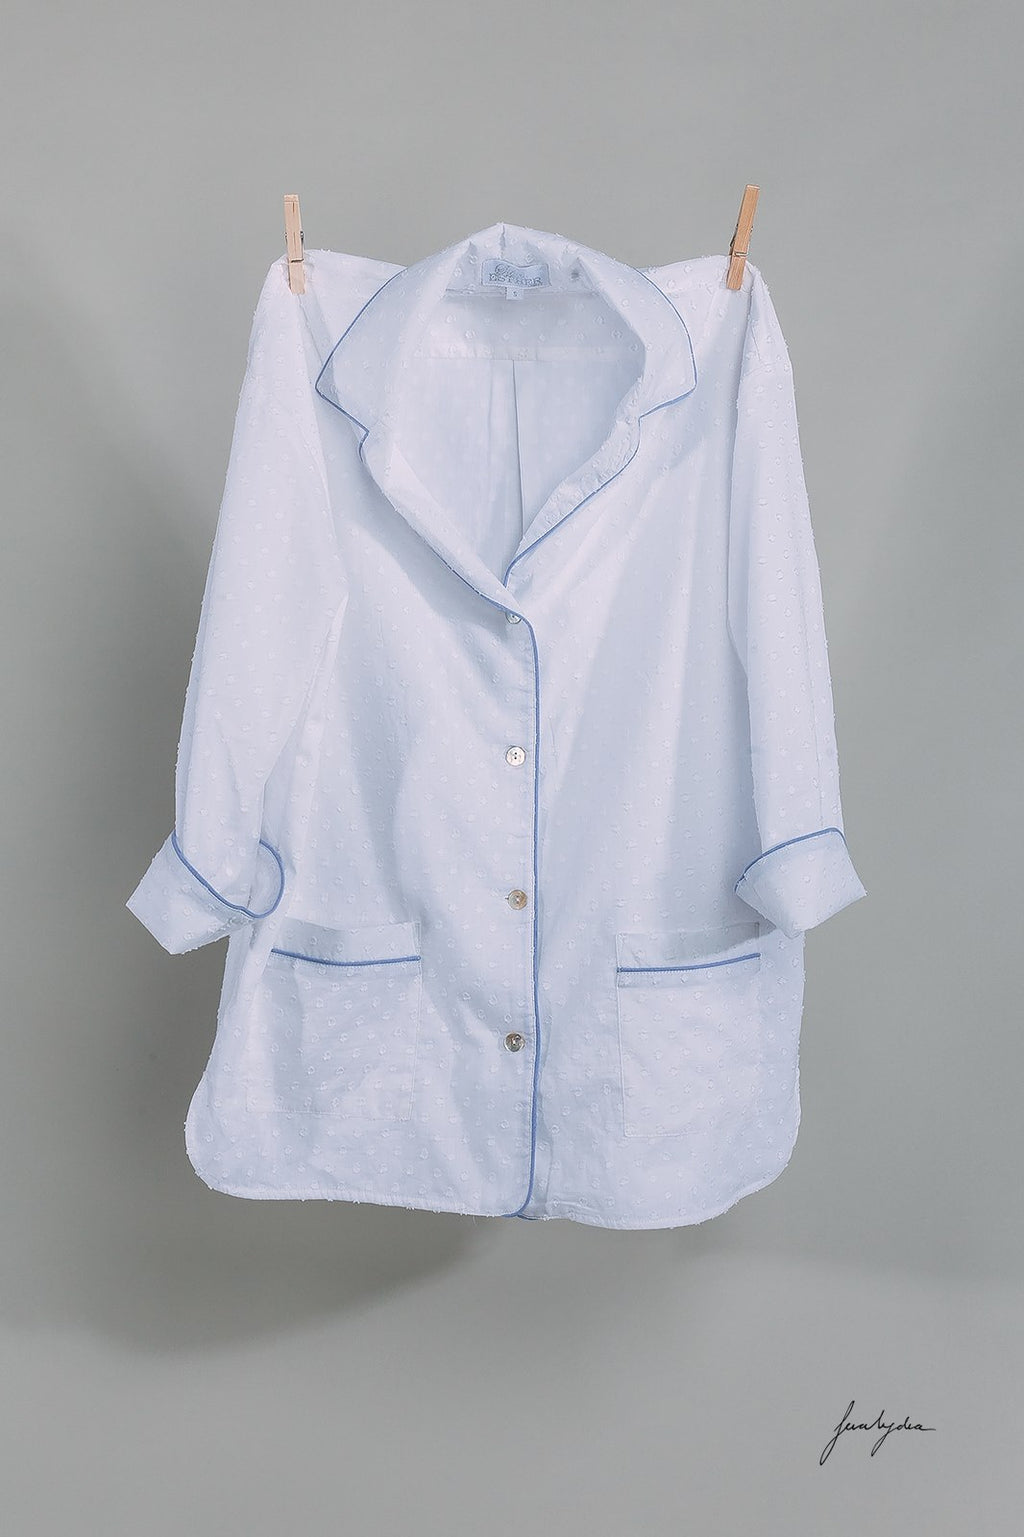 Luxury white cotton dobby long pyjama set with blue chambray piping. The pj set features Mother of Pearl buttons and pockets on the jacket. Ultimate luxury loungewear!